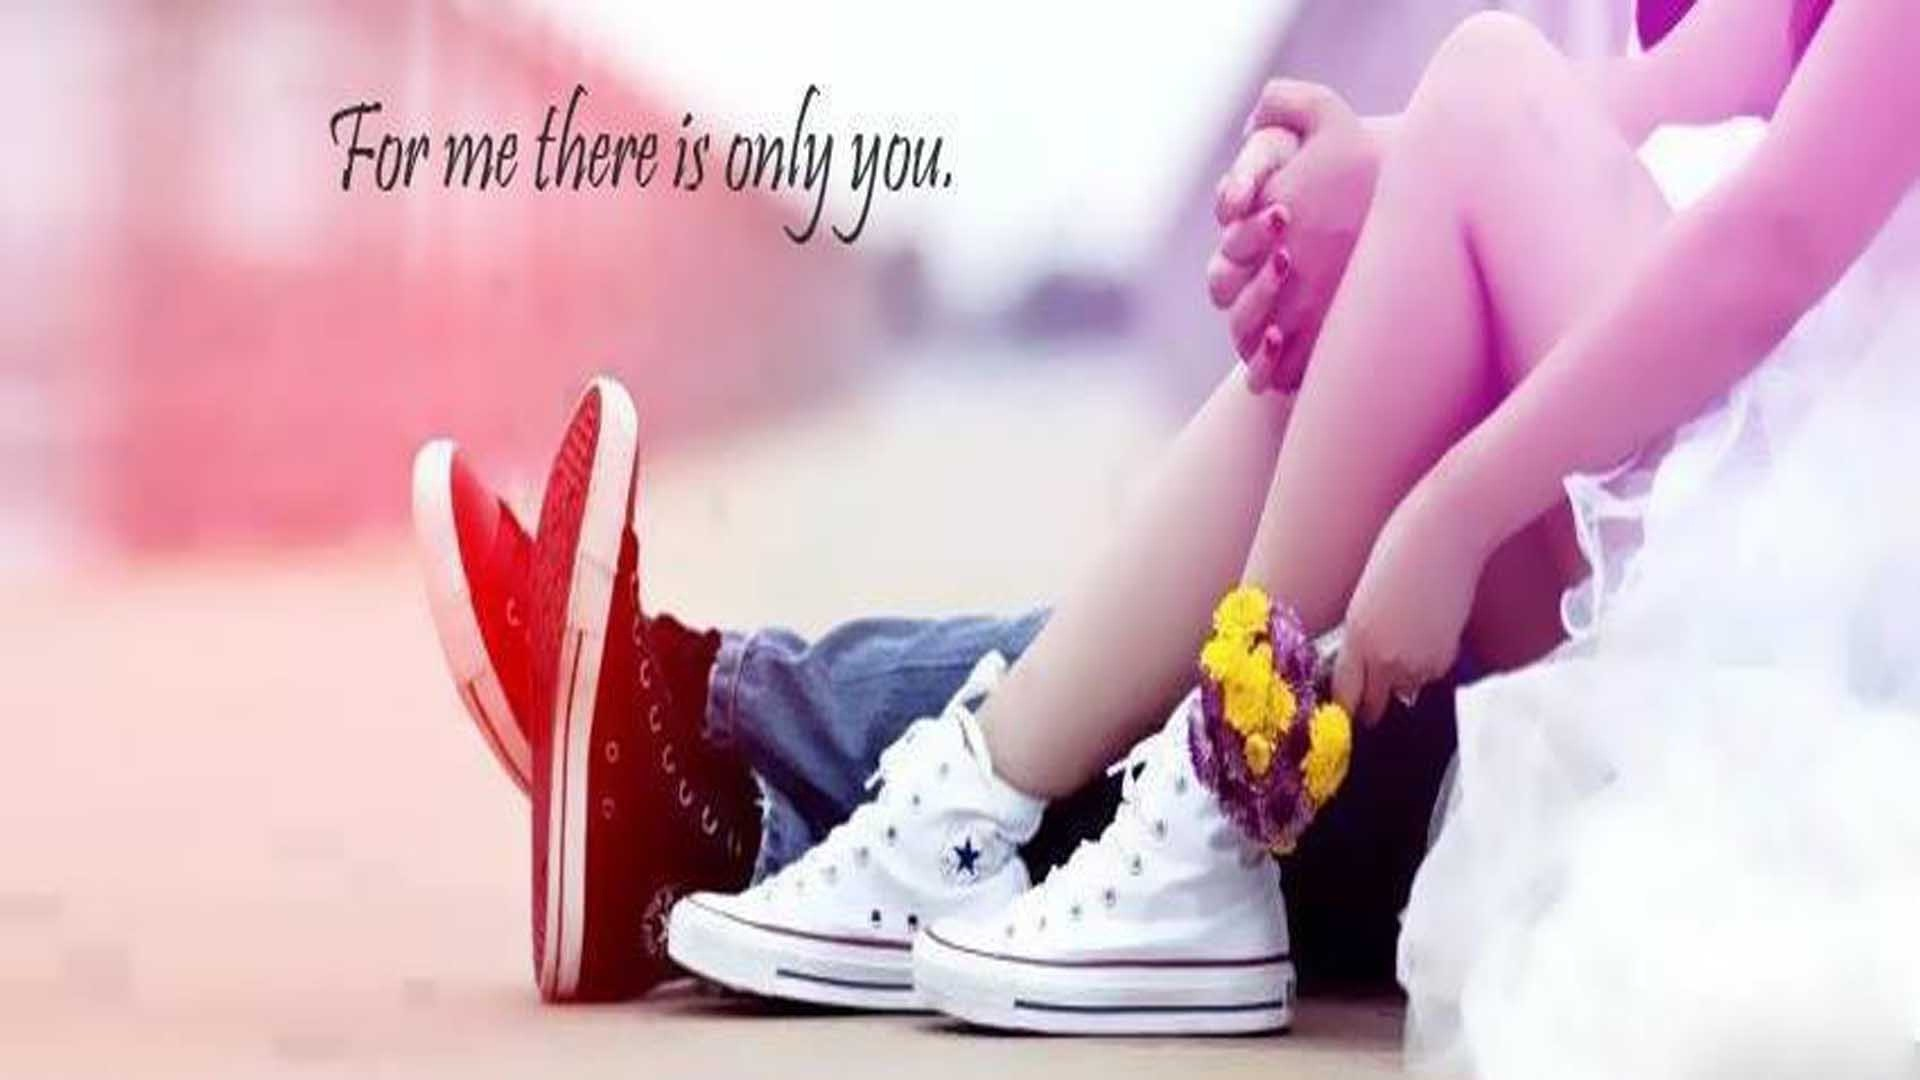 true love wallpapers free download - photo #15